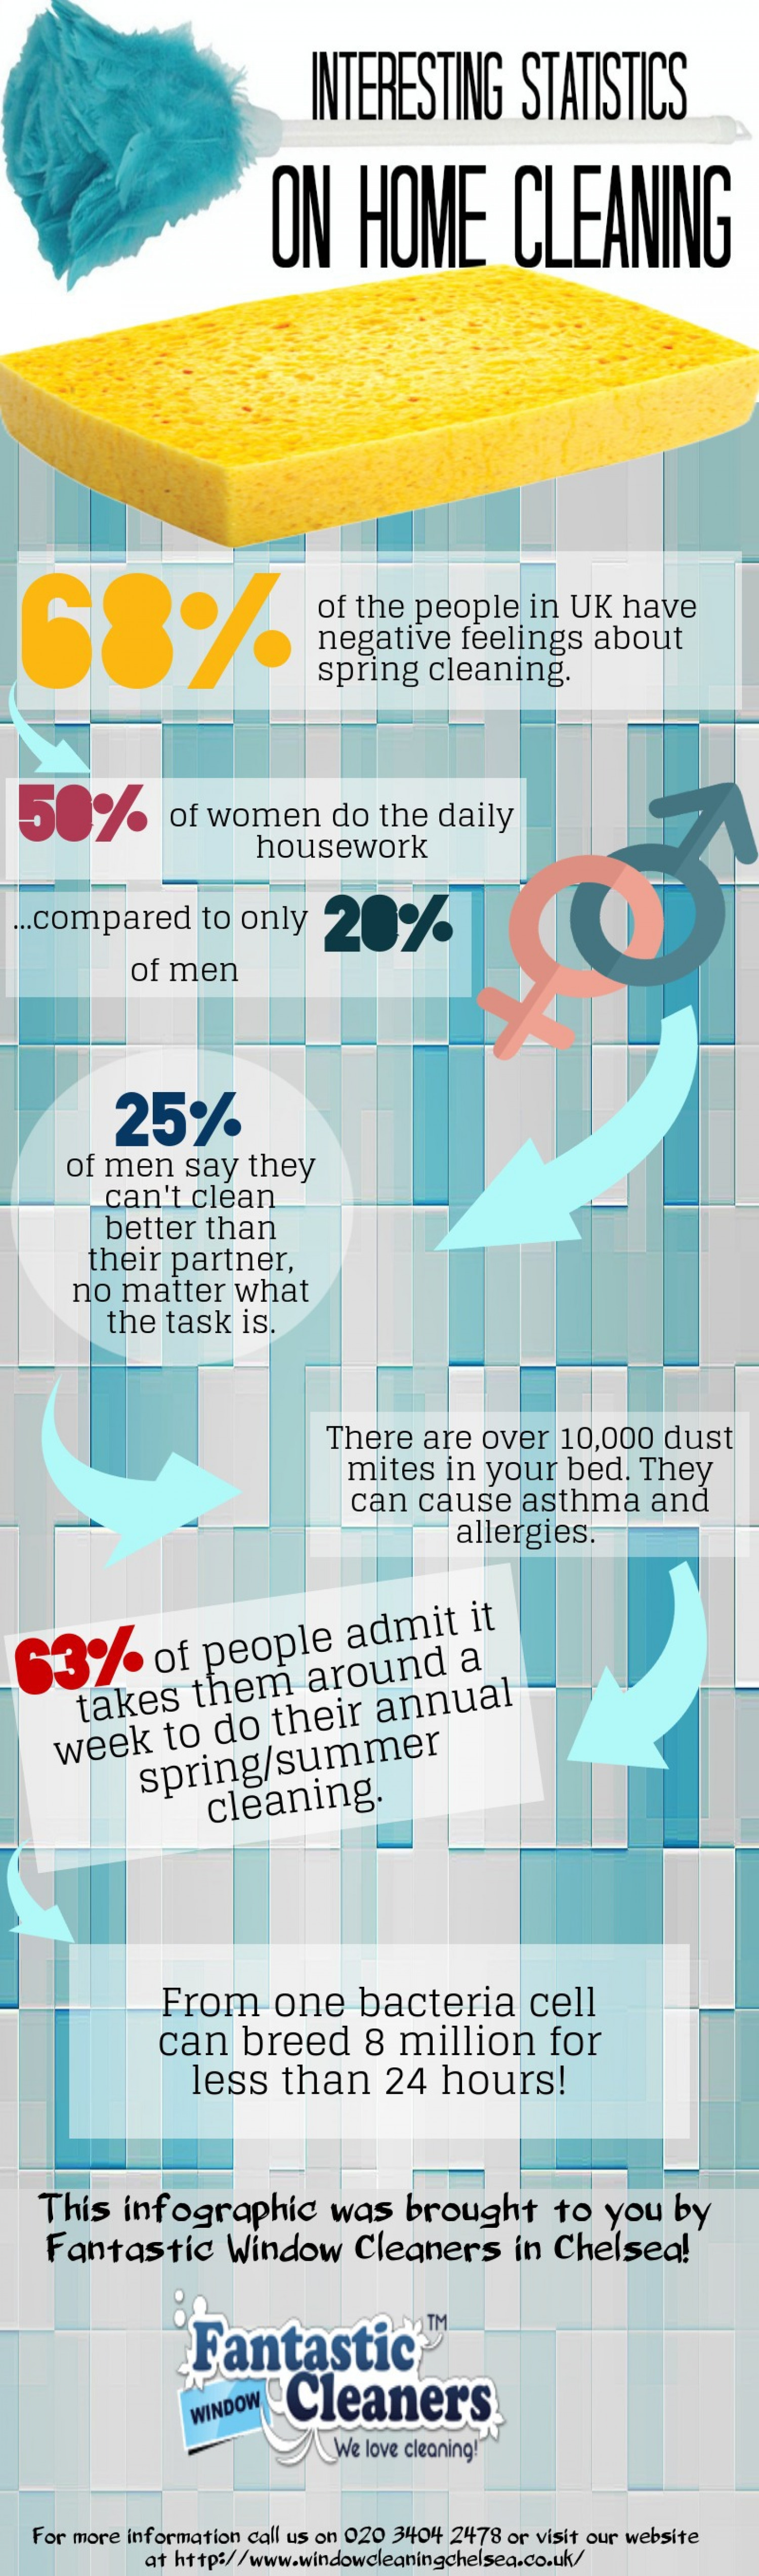 Interesting Statistics On Home Cleaning Infographic